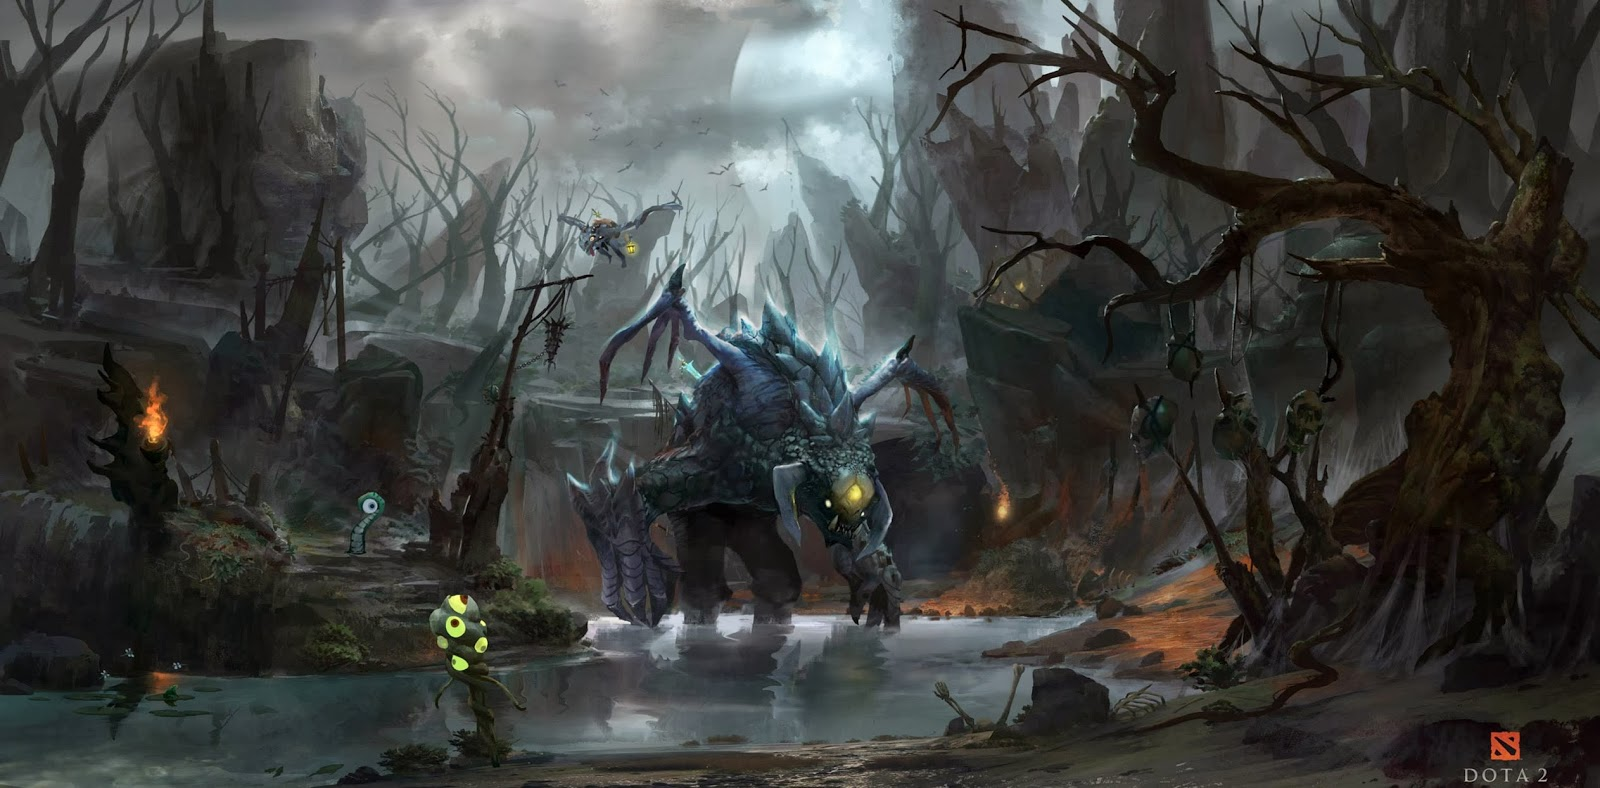 dota 2 wallpapers dota 2 wallpaper hd roshan